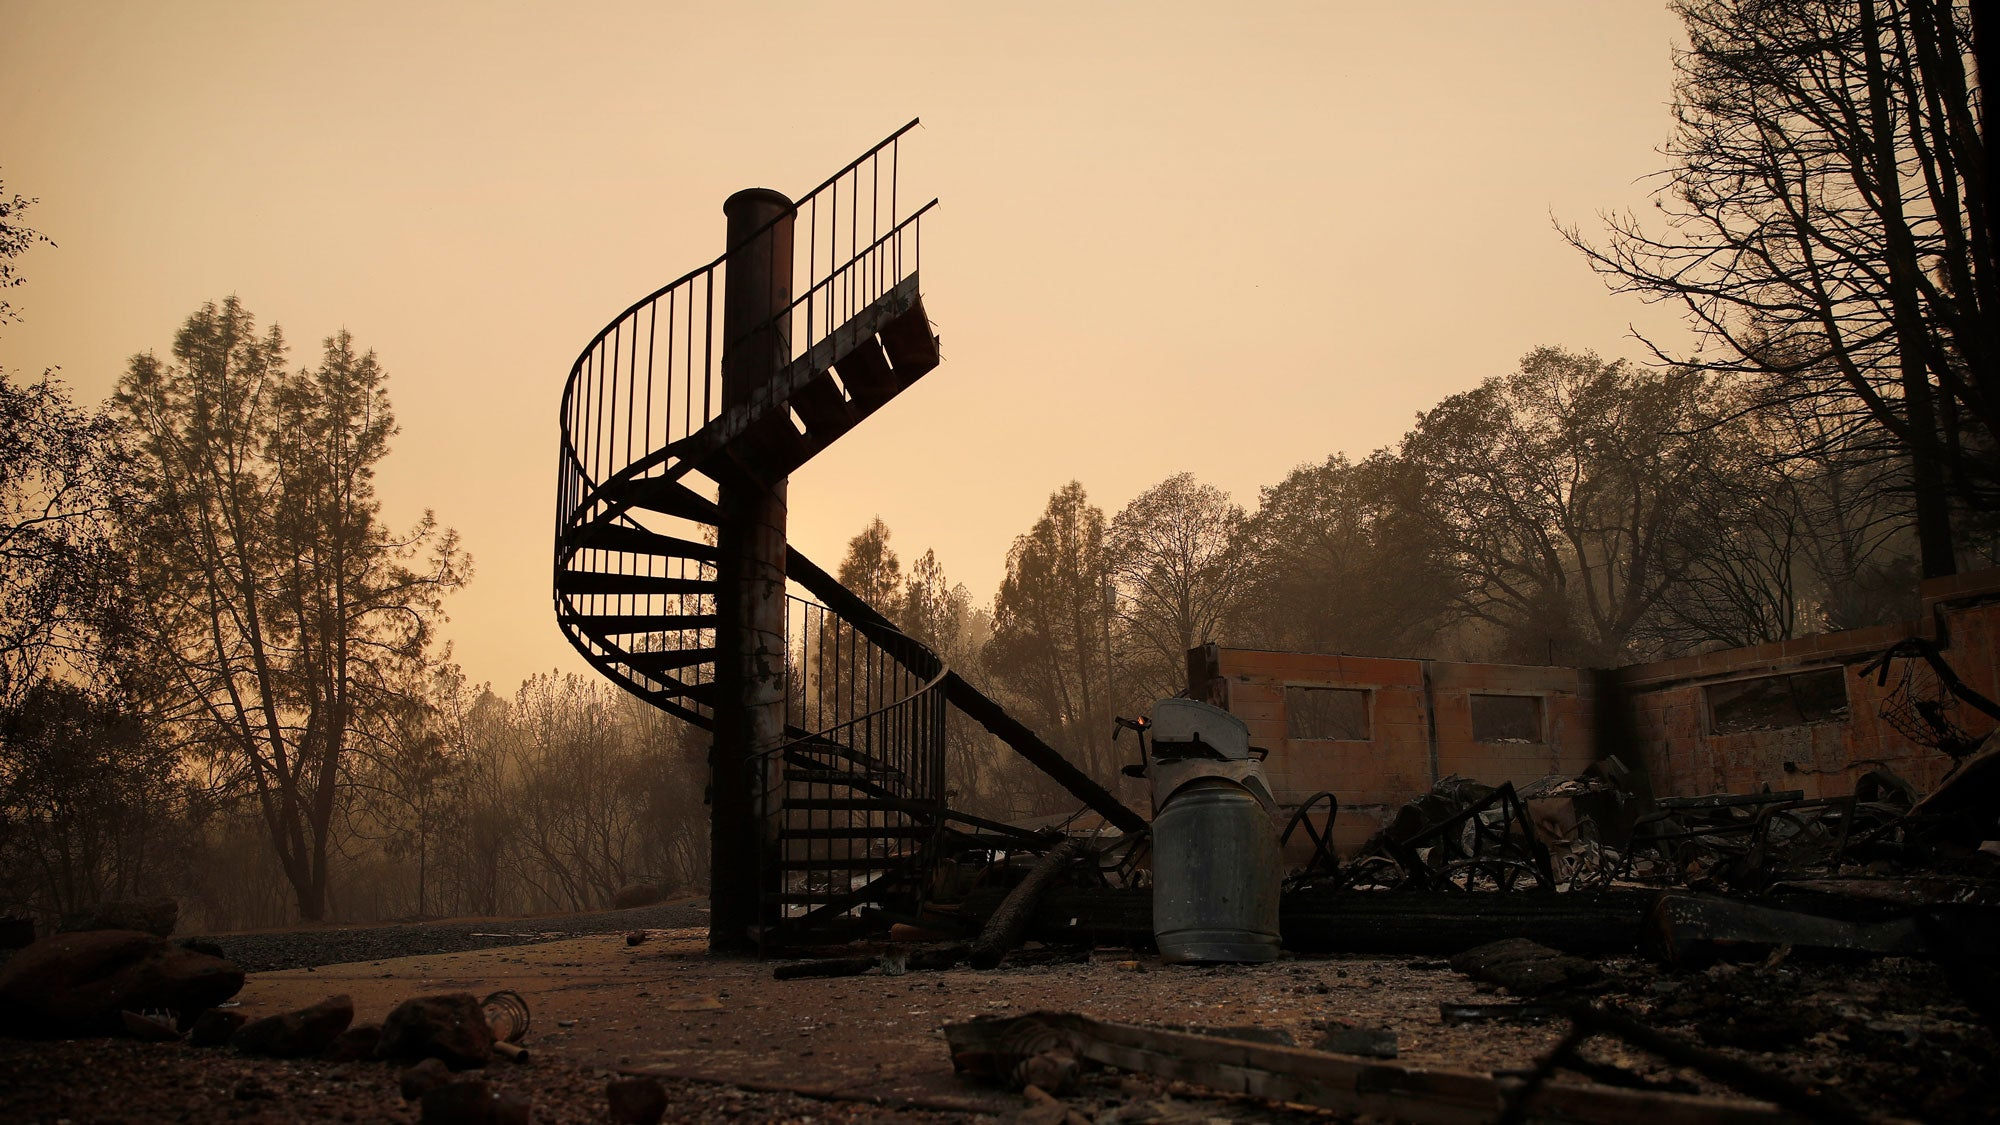 California Utility Co. Emailed Landowner About Sparking Power Line One Day Before Deadly Wildfire